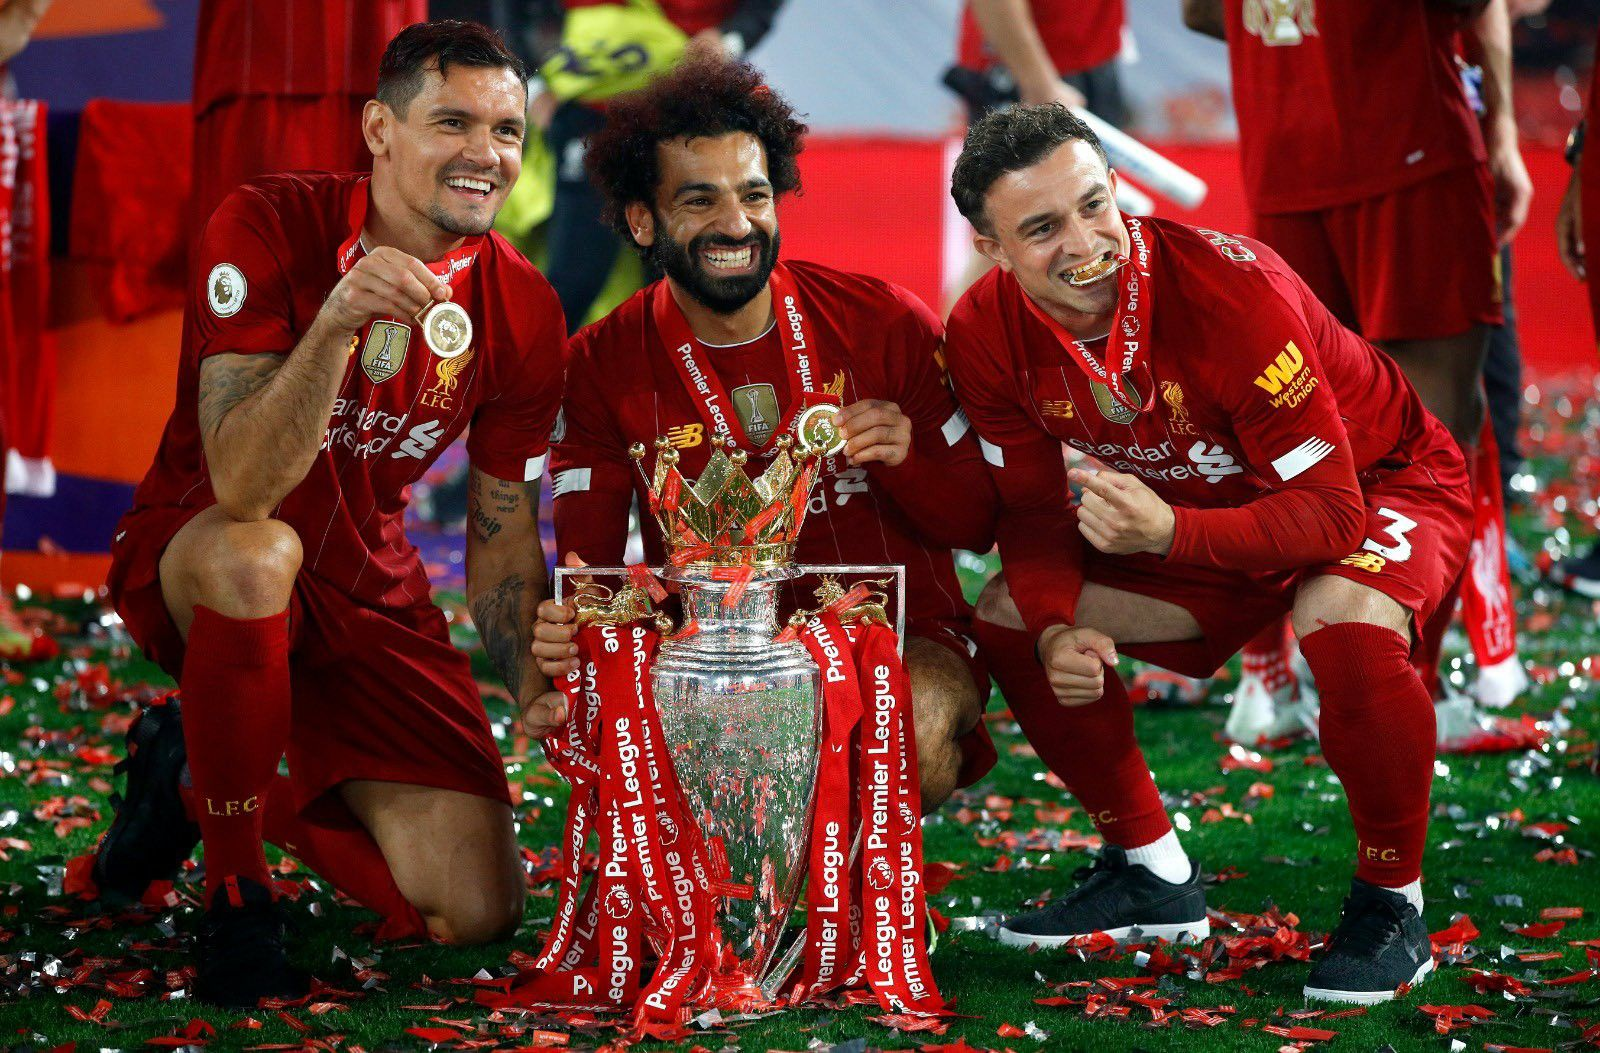 Pin By Anfield Luqman On 2019 Premier League Champion In 2020 Premier League Premier League Champions Liverpool